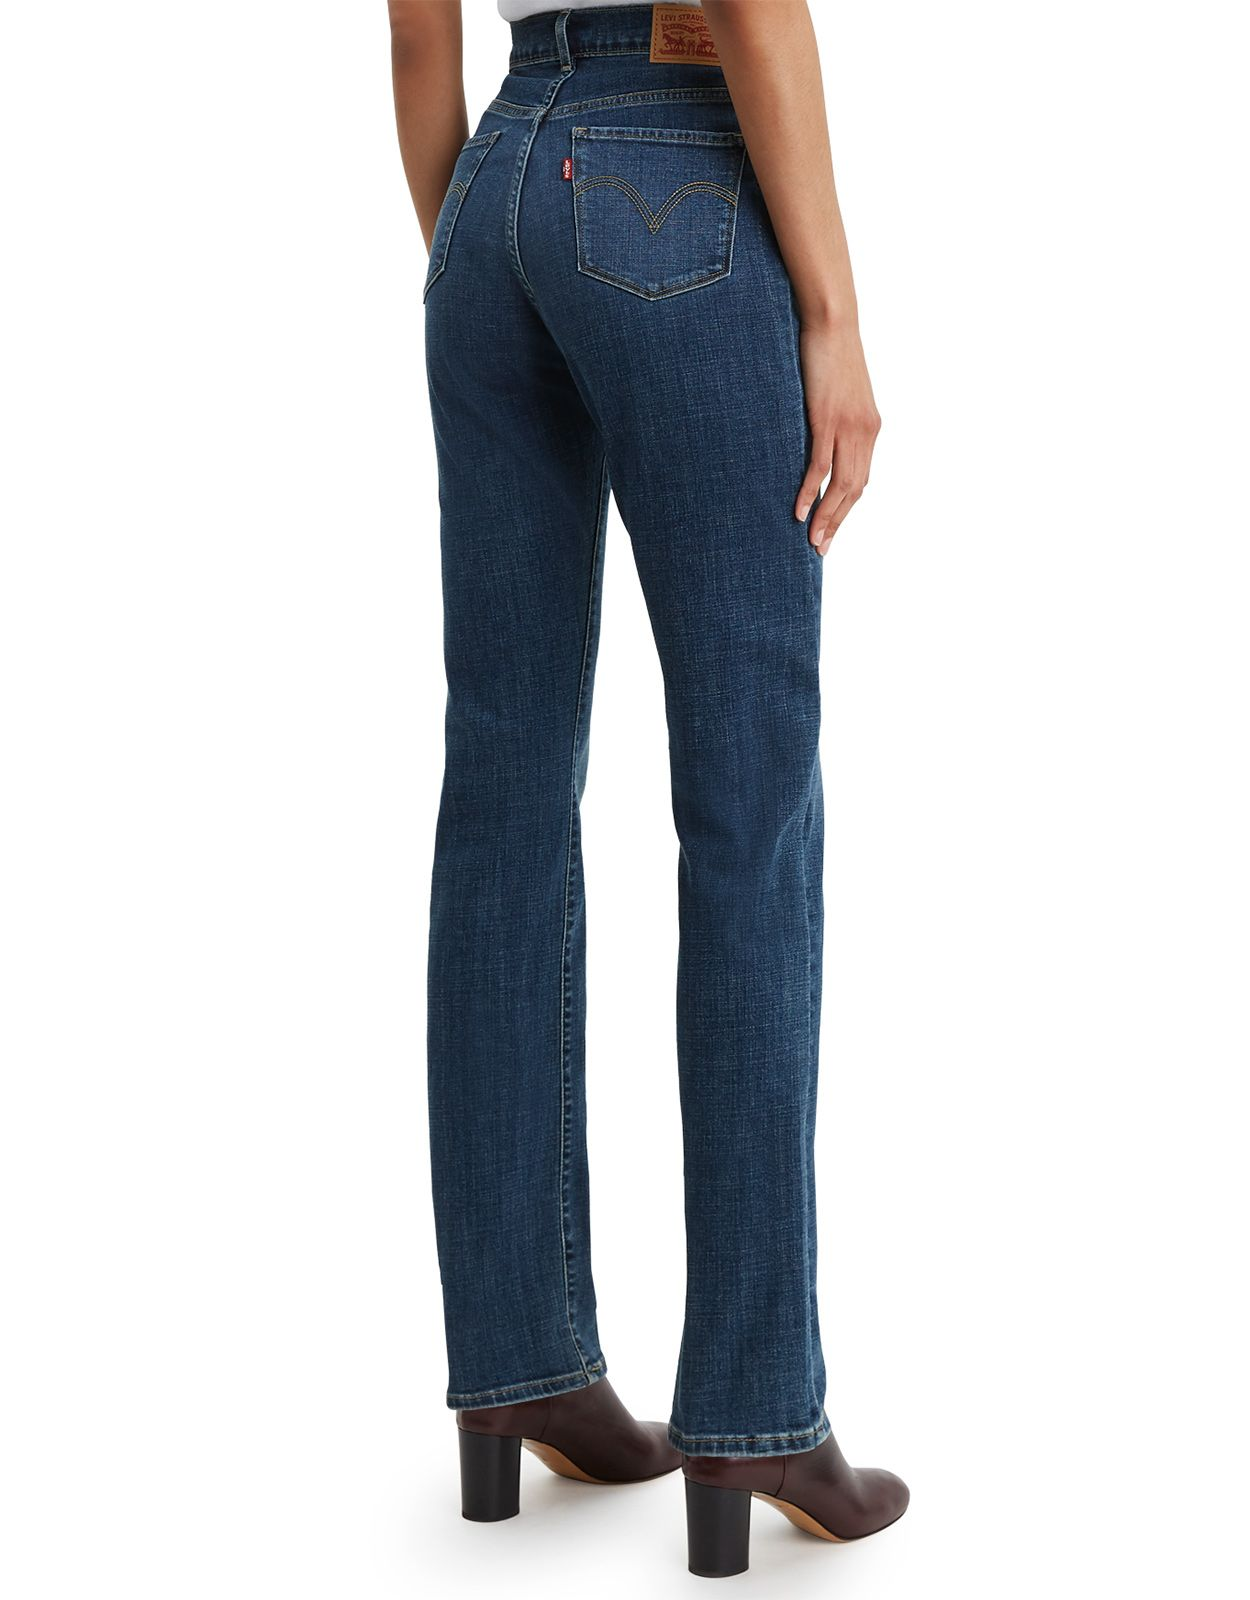 Levi's Women's Classic Straight Stretch Mid Rise Easy Fit Straight Leg Jeans - Lapis Maui Waterfall